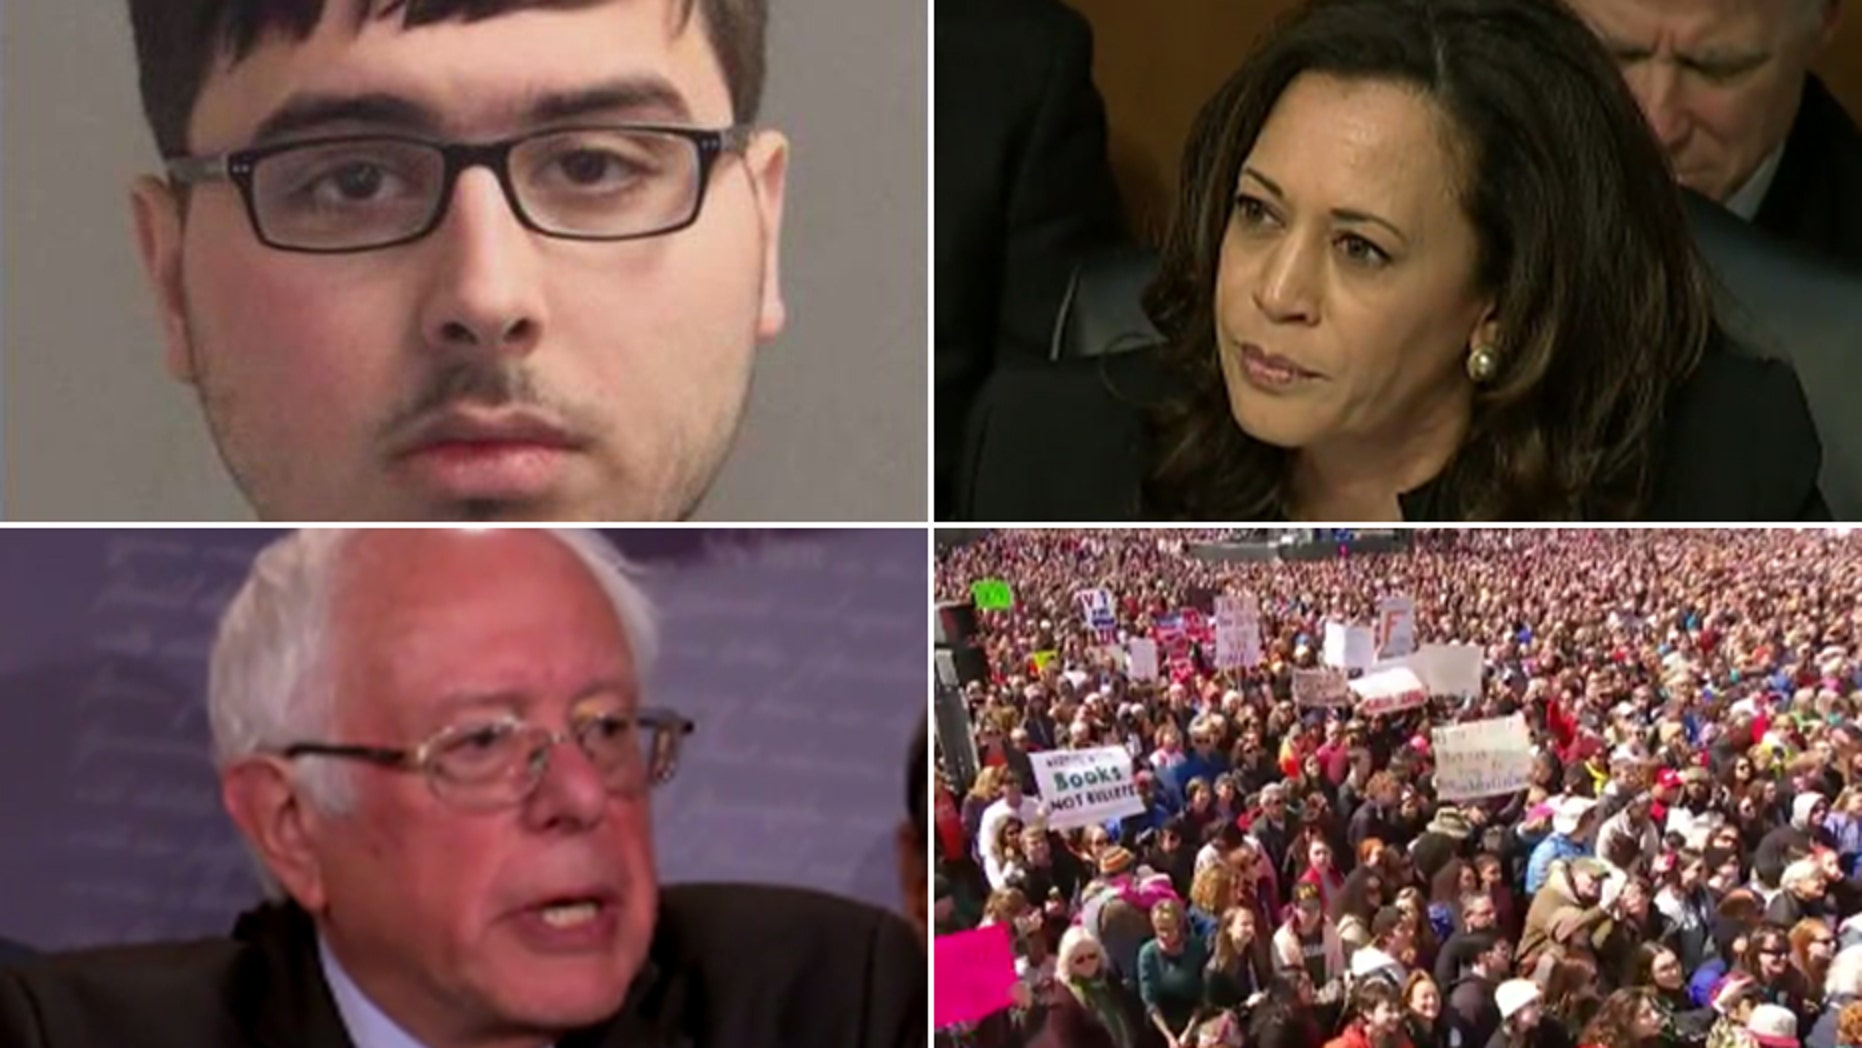 Nicholas Bukoski, top left, is accused of threatening Sen. Bernie Sanders, I-Vt., Sen. Kamala Harris, D-Calif., and 'March for Our Lives' rally attendees.